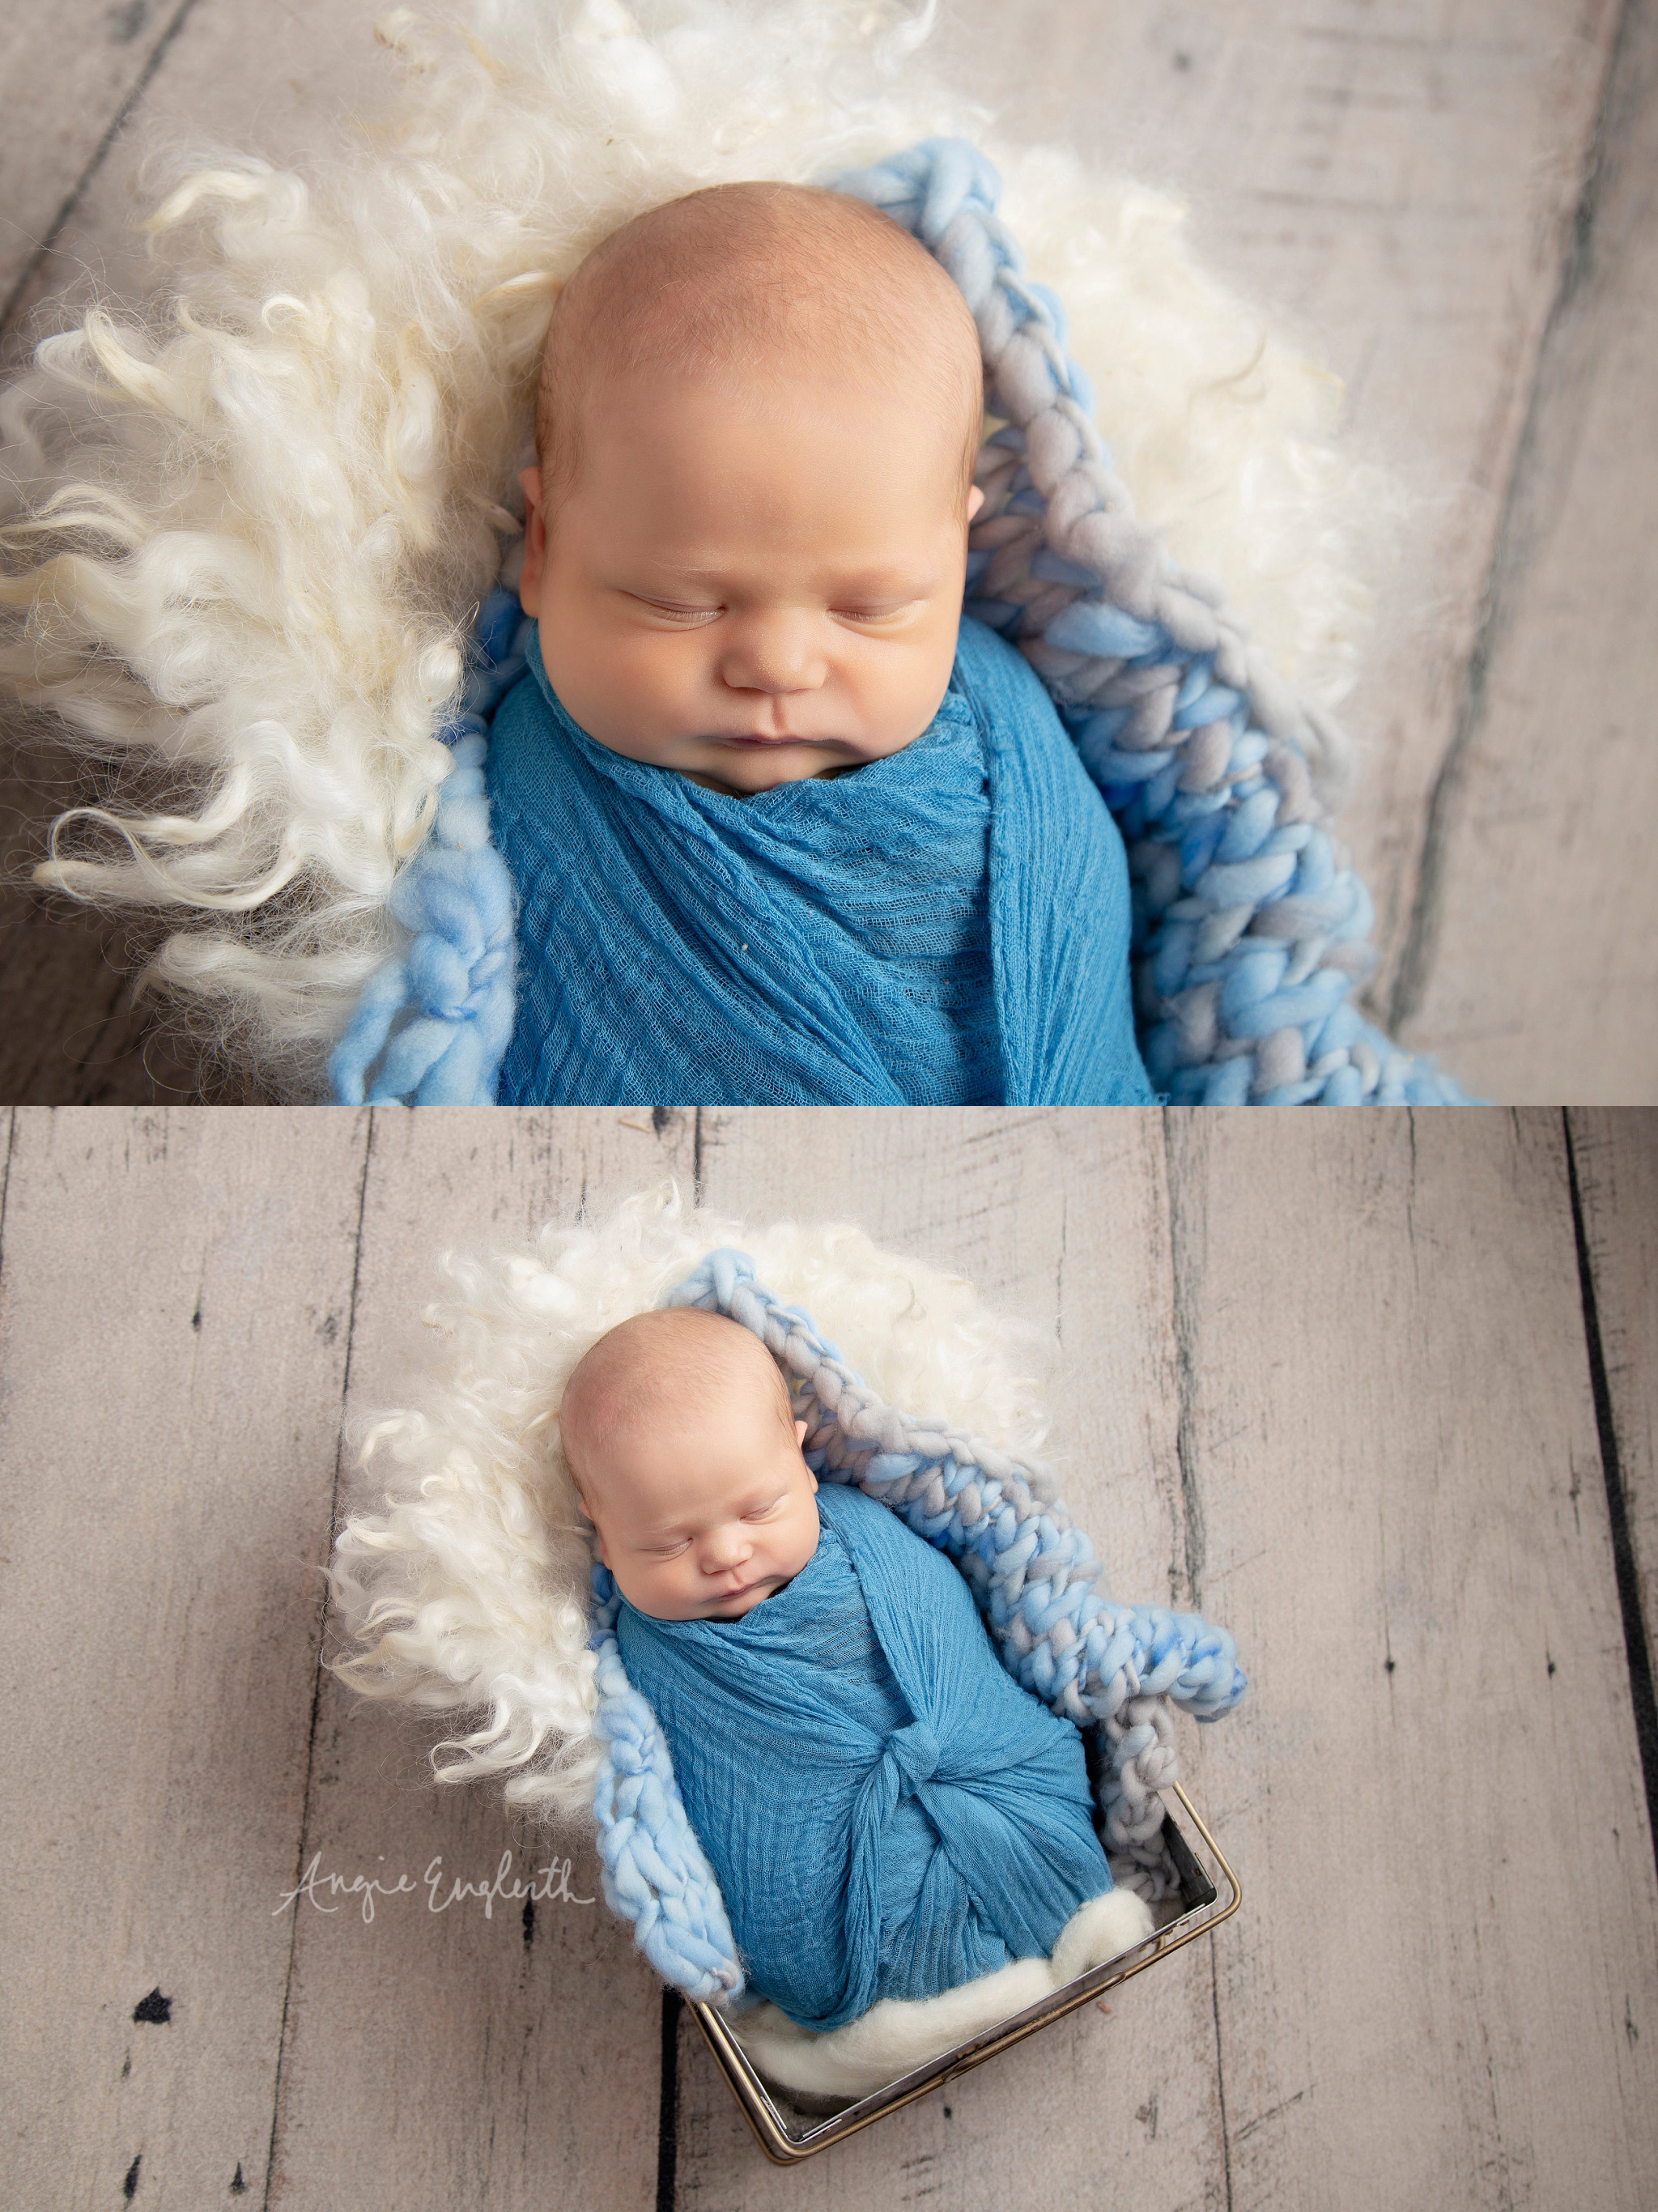 lancaster_newborn_photographer_angie_englerth_central_pa_014.jpg